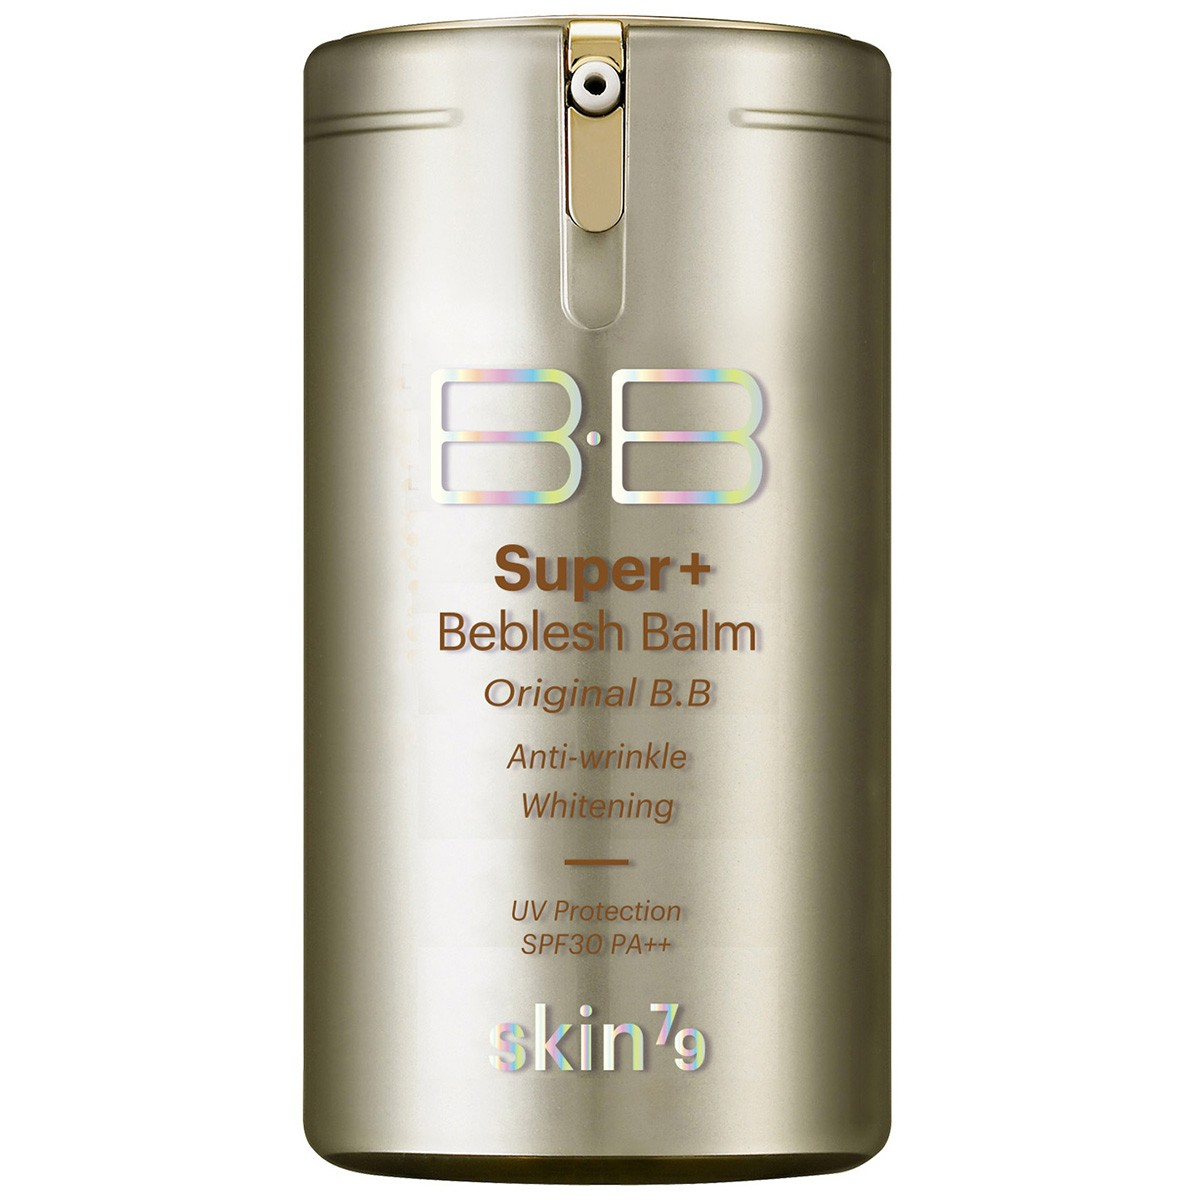 SKIN79 Super+ Beblesh Balm <br />BB Gold SPF30